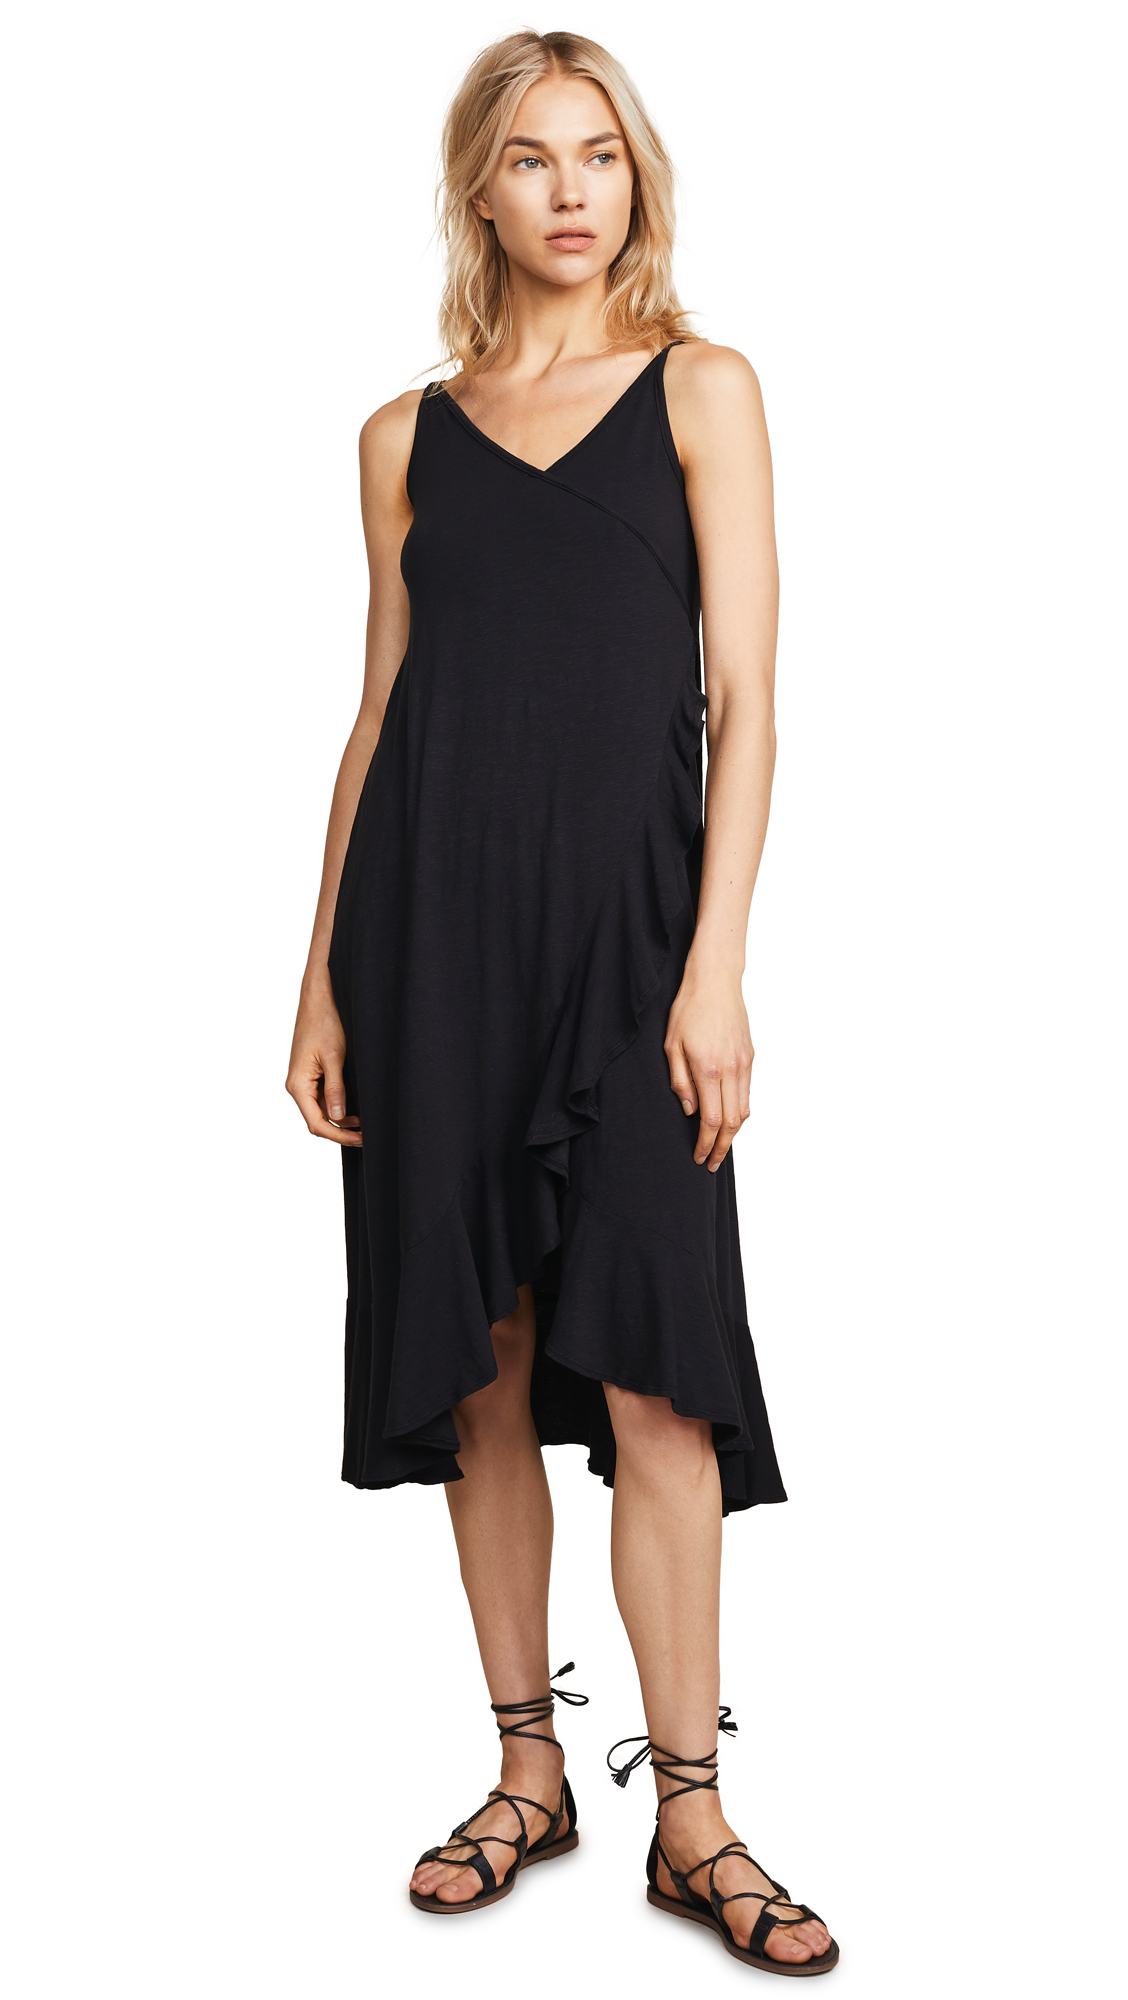 SUNDRY Crossover Ruffle Midi Dress